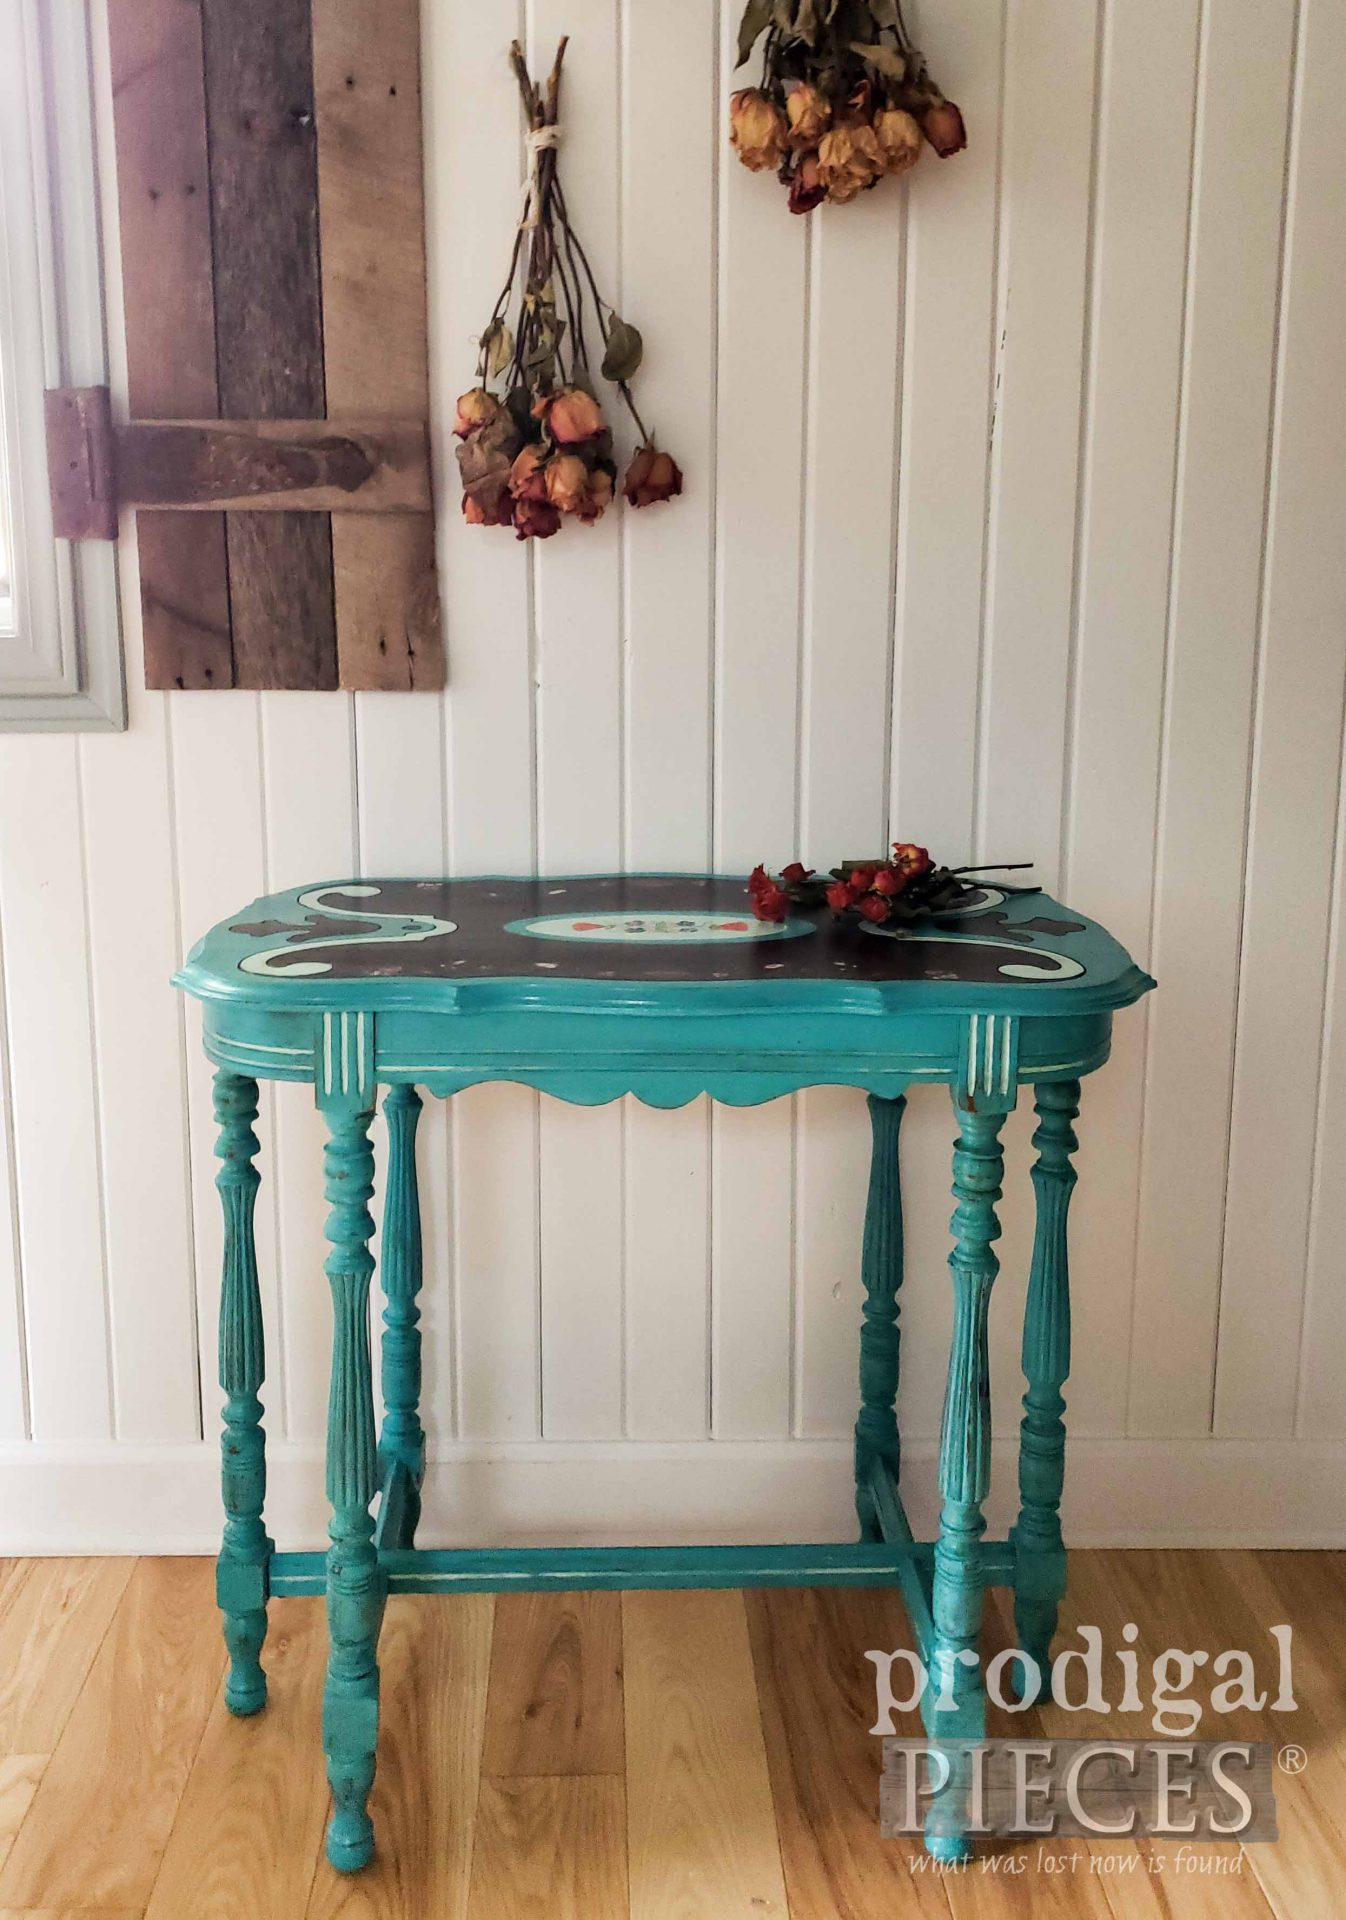 Rustic Chic Antique Entry Table Makeover by Larissa of Prodigal Pieces | prodigalpieces.com #prodigalpieces #diy #furniture #home #farmhouse #homedecor